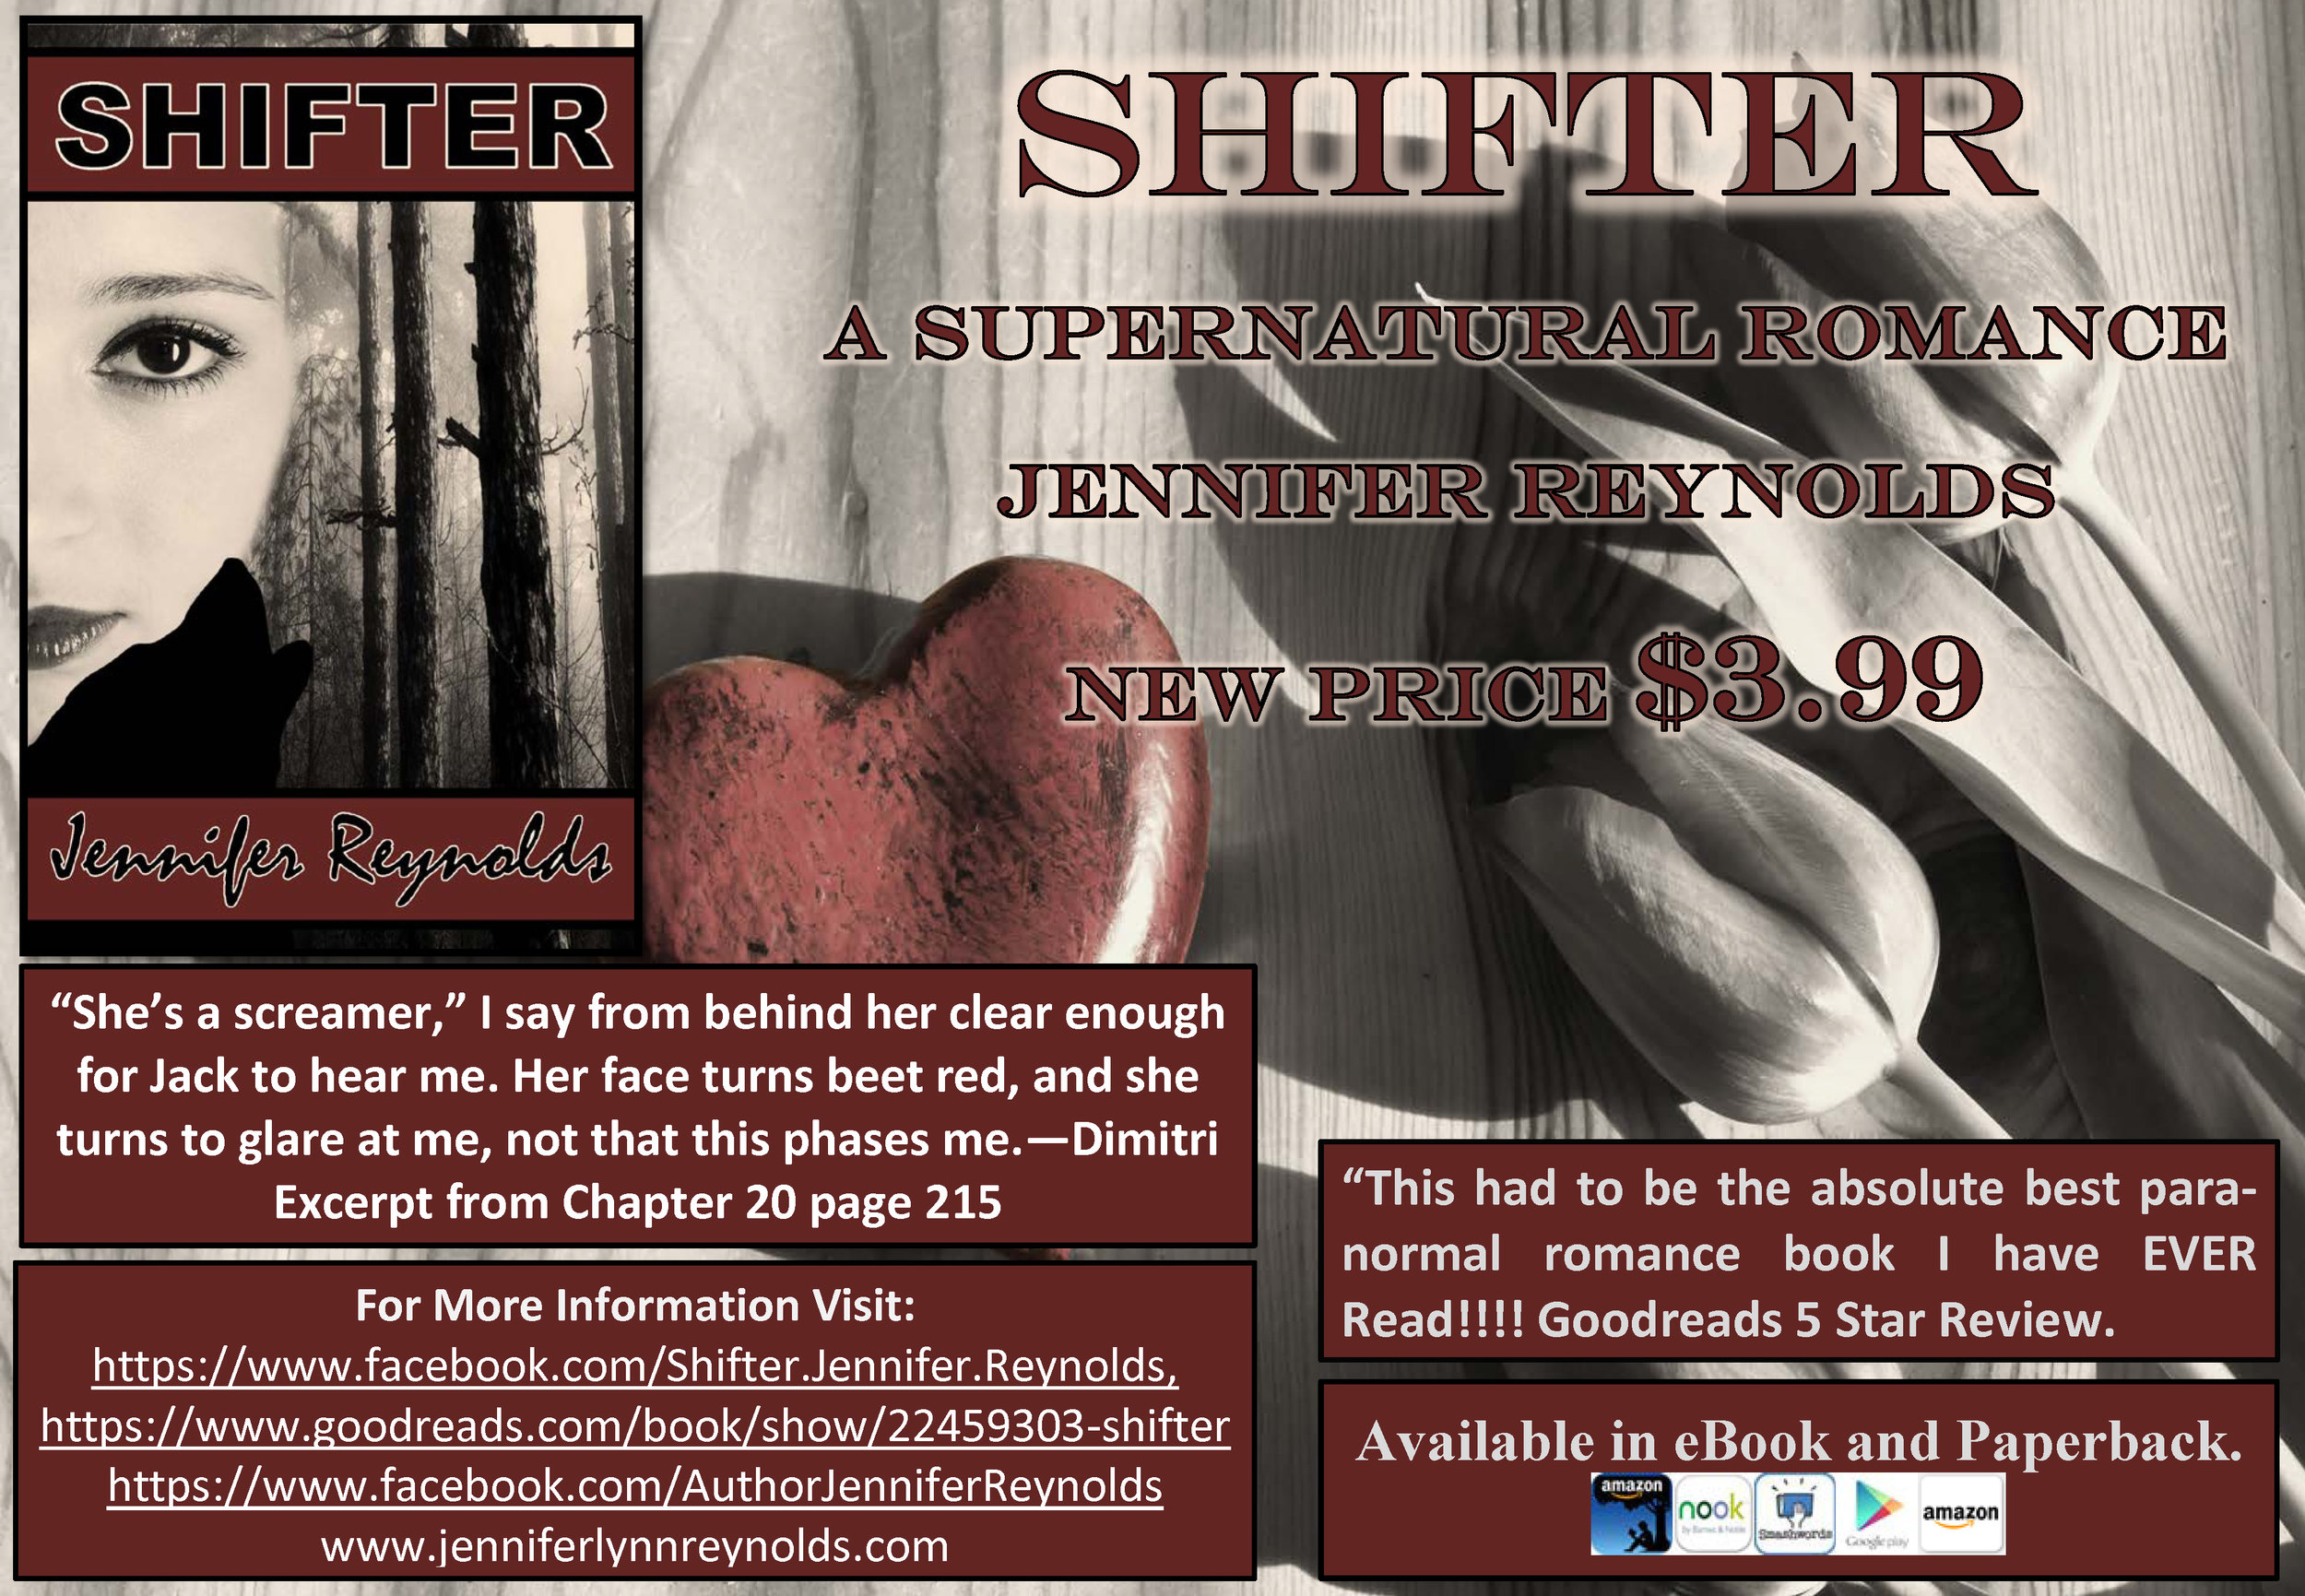 Happy New Year, everyone. SHIFTER is starting out the New Year with an altered cover, new flyer, and a new reduced price. If you love Witches, curses, werewolves, shapeshifters, and angels, SHIFTER has them all along with a few burly alpha males, one timid, slightly overweight heroine, some steamy sex scenes, and a happily ever after ending. Stop by your favorite online retailer and download your copy today. This 374-page, stand-alone eBook is only $3.99. SHIFTER has a 4.54 rating on Goodreads, a 4.6 rating on Amazon, and a 4.75 rating on Smashwords.      http://www.amazon.com/dp/B00M8HLU2U      https://www.smashwords.com/books/view/462262      https://play.google.com/store/books/details/Jennifer_Reynolds_Shifter?id=e6wbBAAAQBAJ&hl=en      http://www.barnesandnoble.com/w/books/1120024902?ean=2940149636907